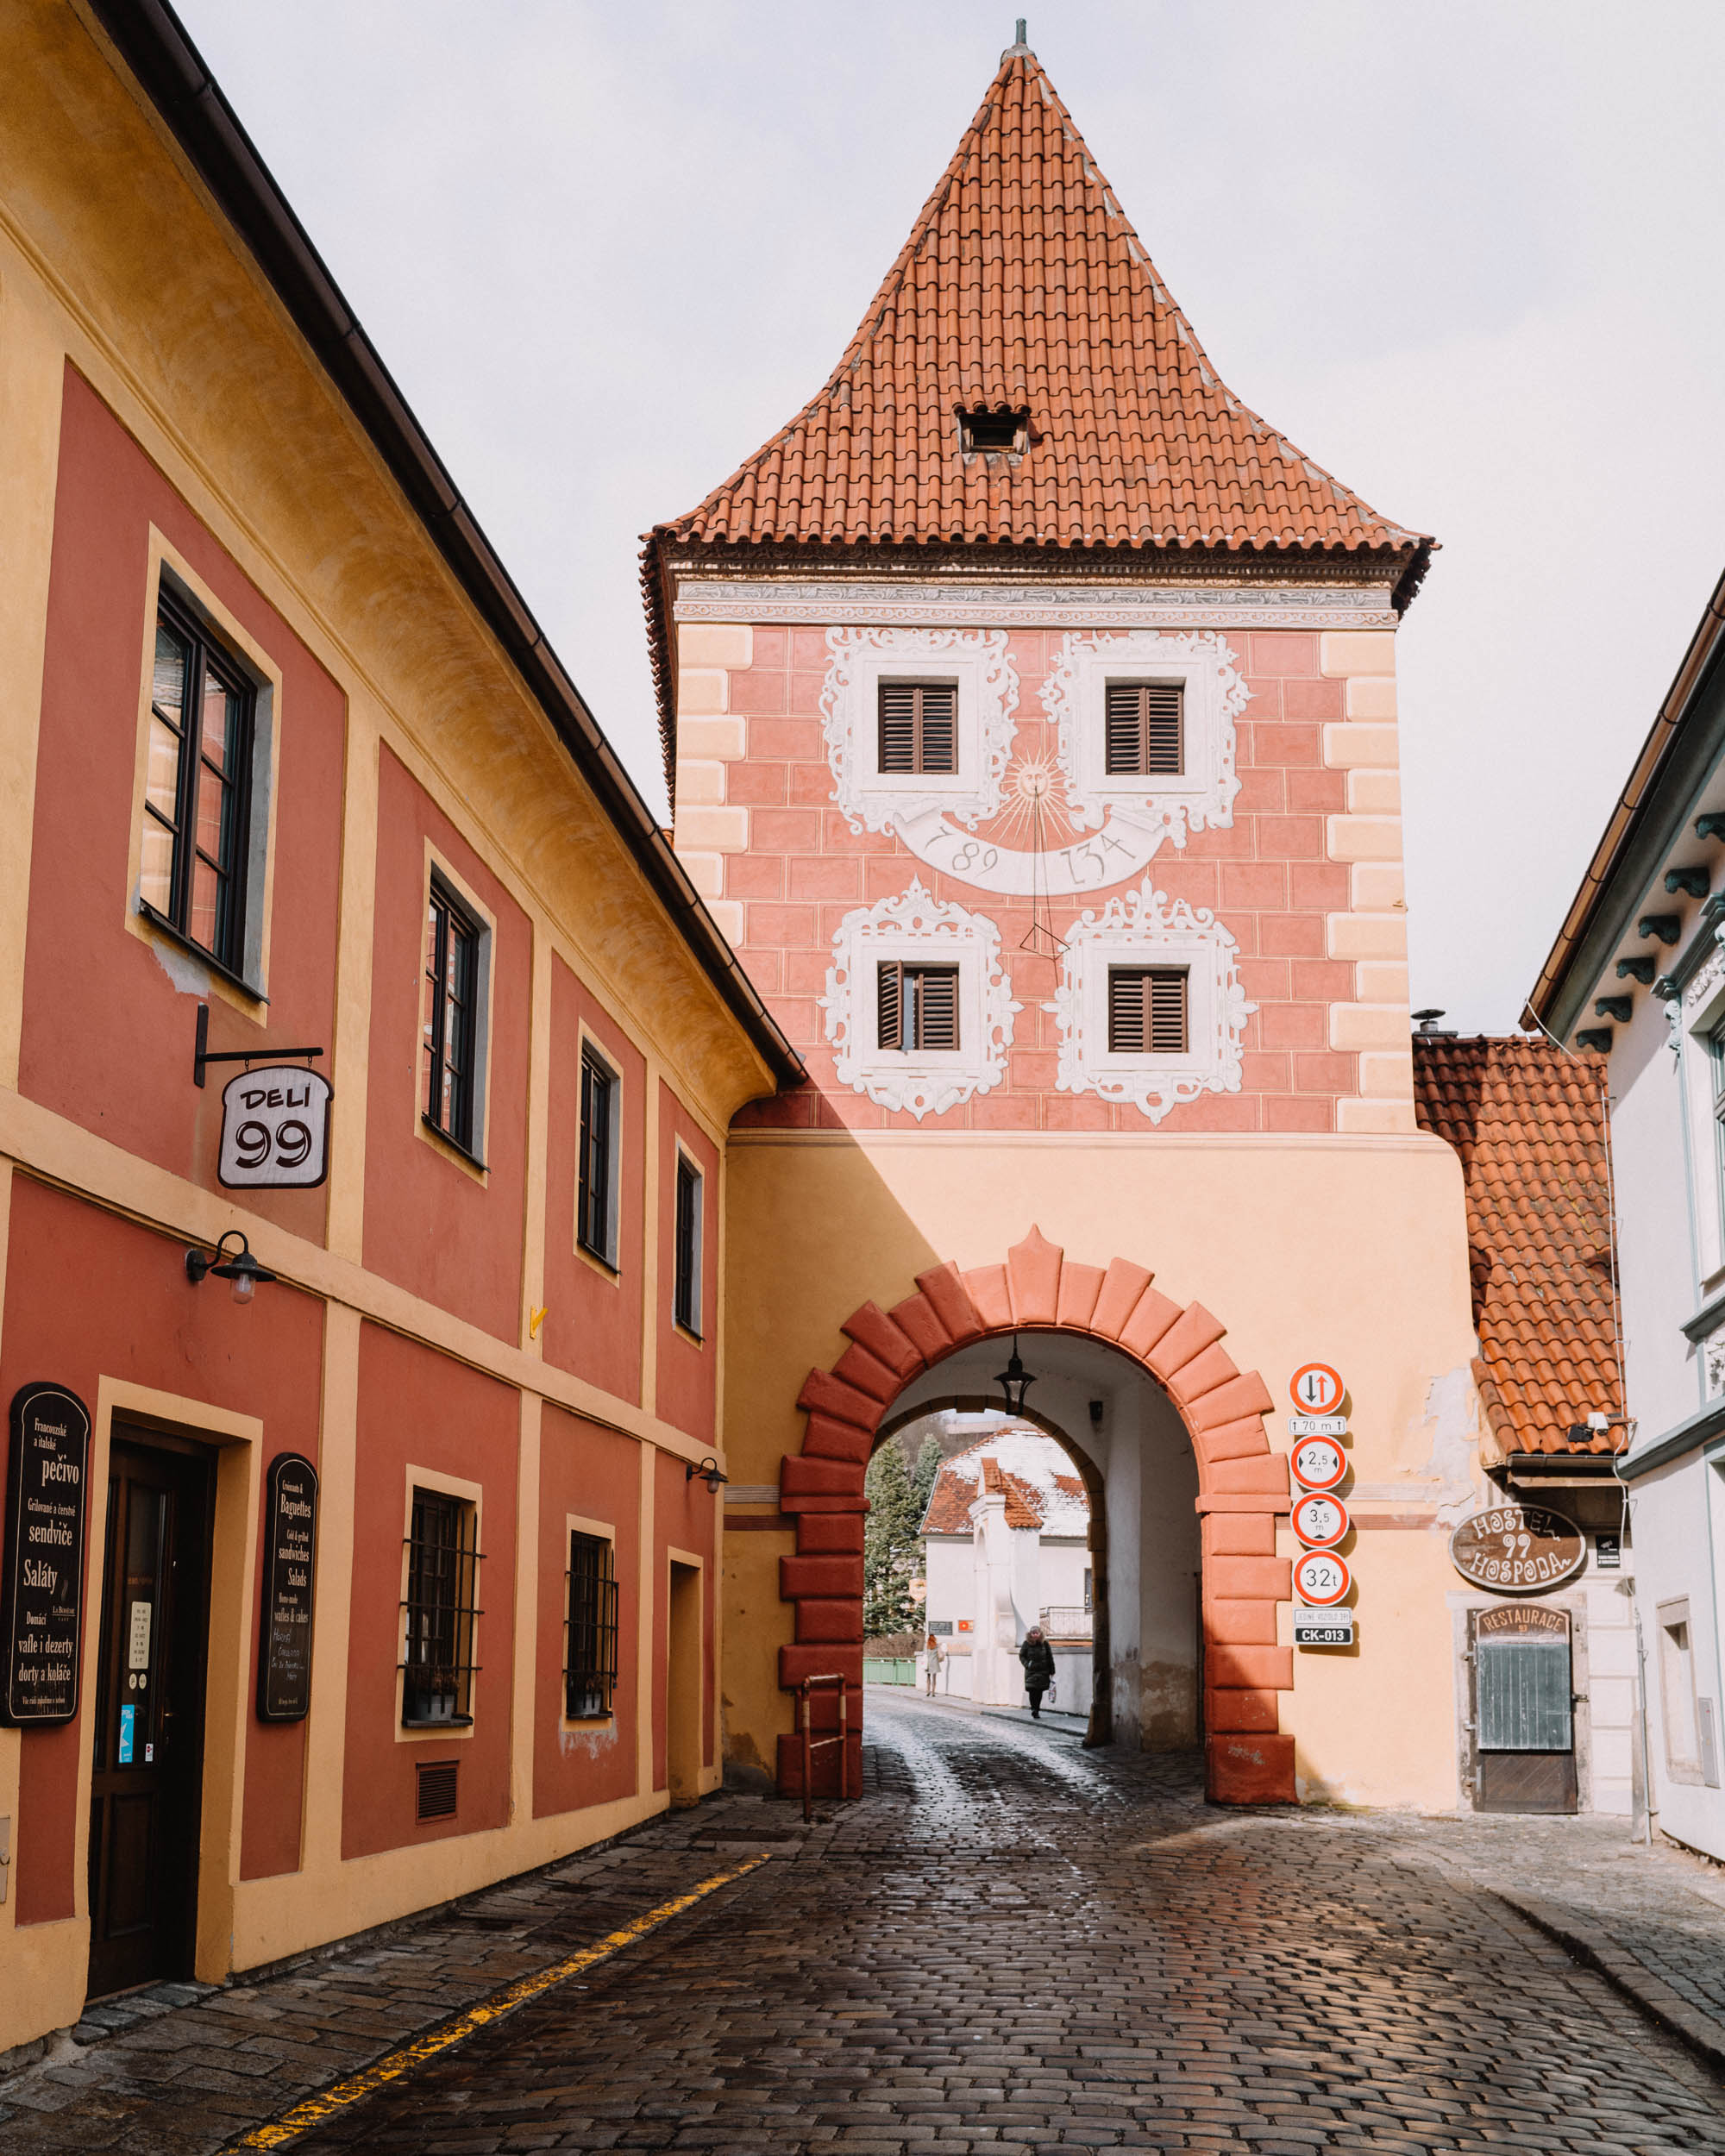 Colorful building with archway in Cesky, Krumlov.